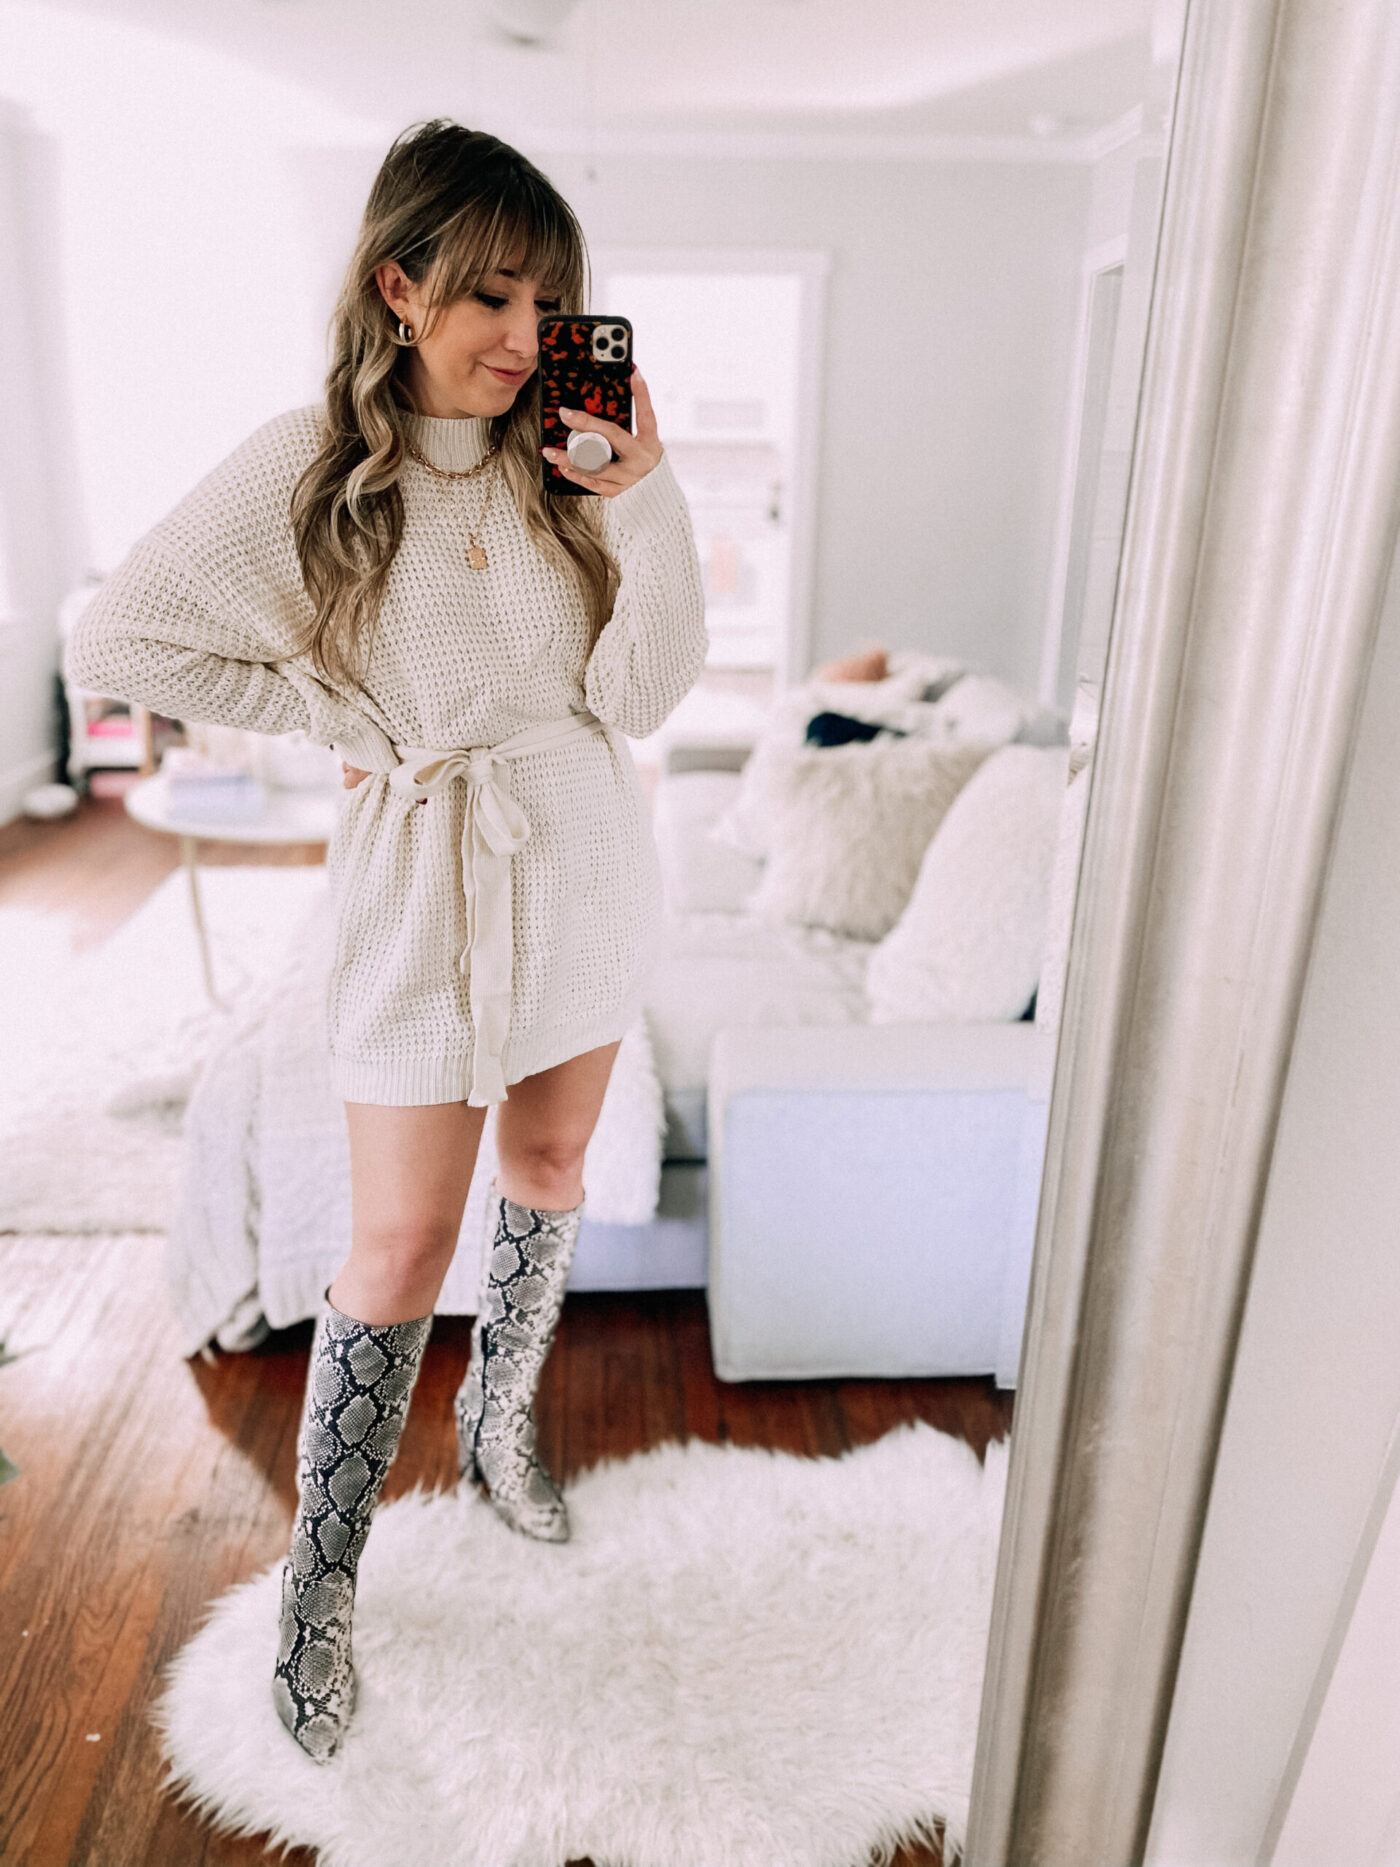 Amazon sweaterdress for fall, sweaterdress and snakeskin boot outfit